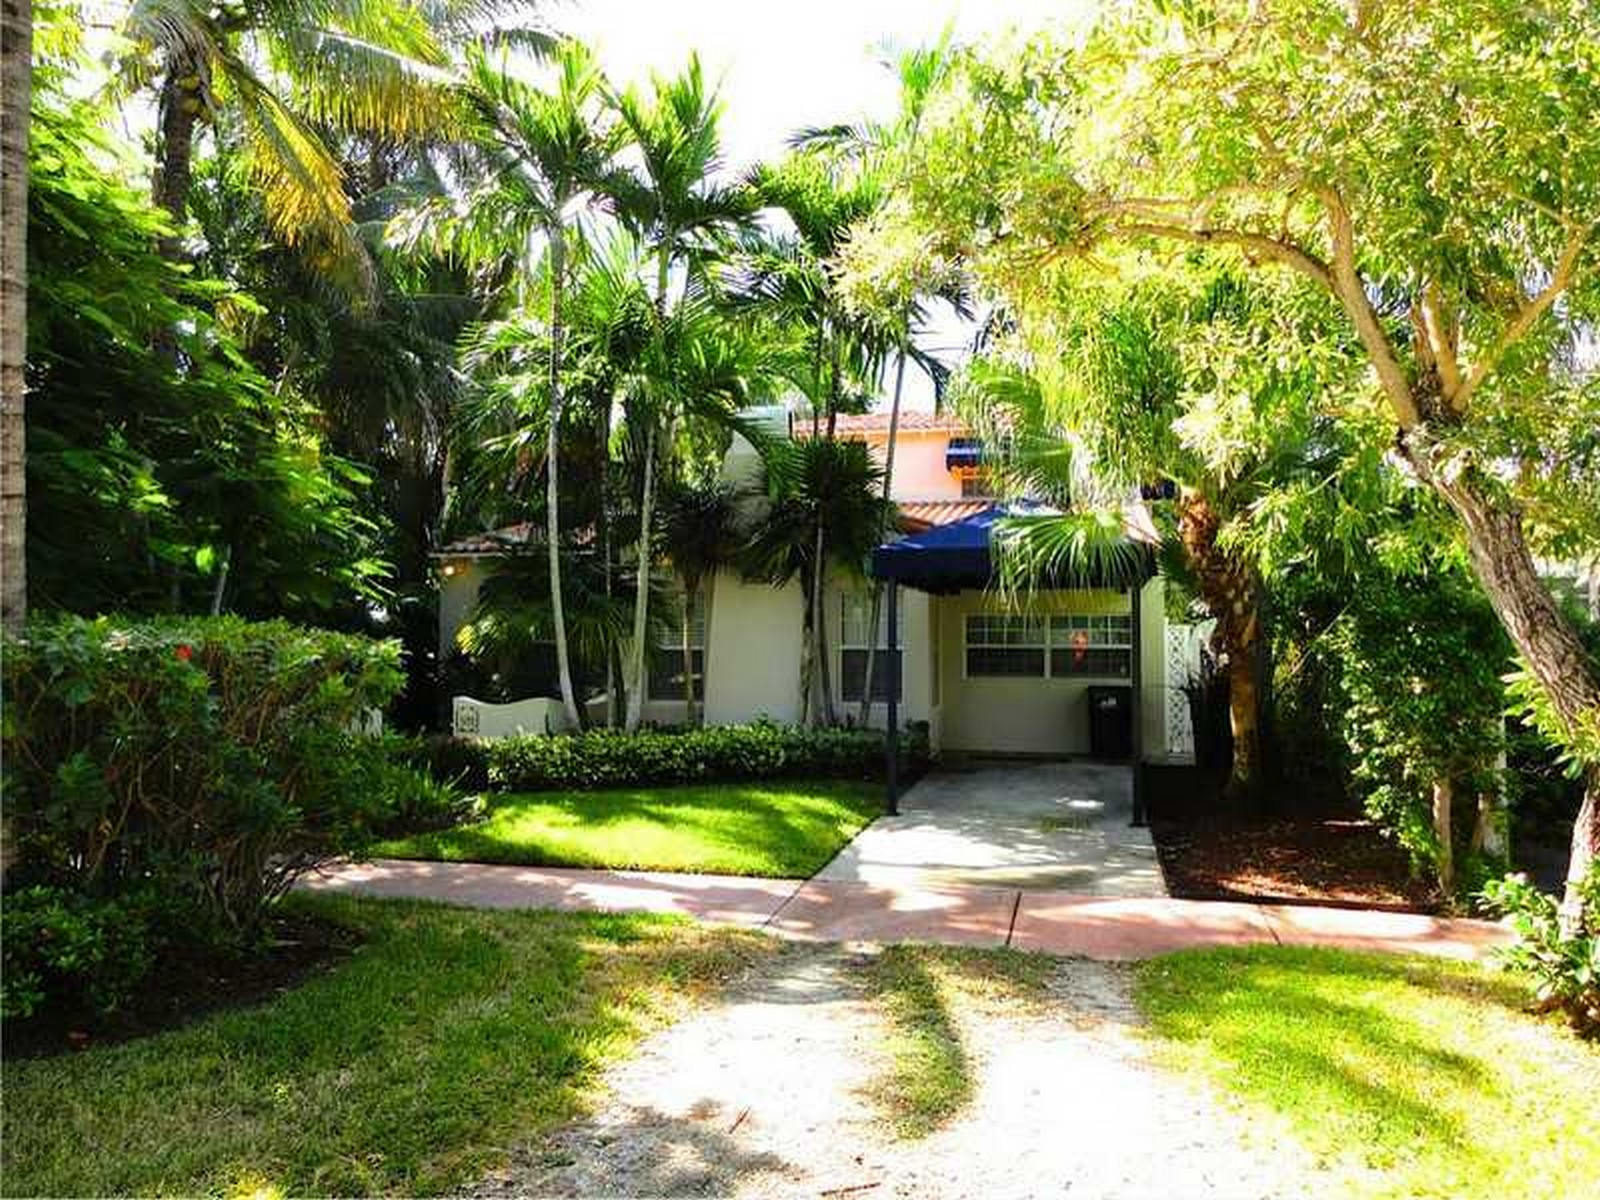 Single Family Home for Sale at 528 W 51 St Miami Beach, Florida 33140 United States